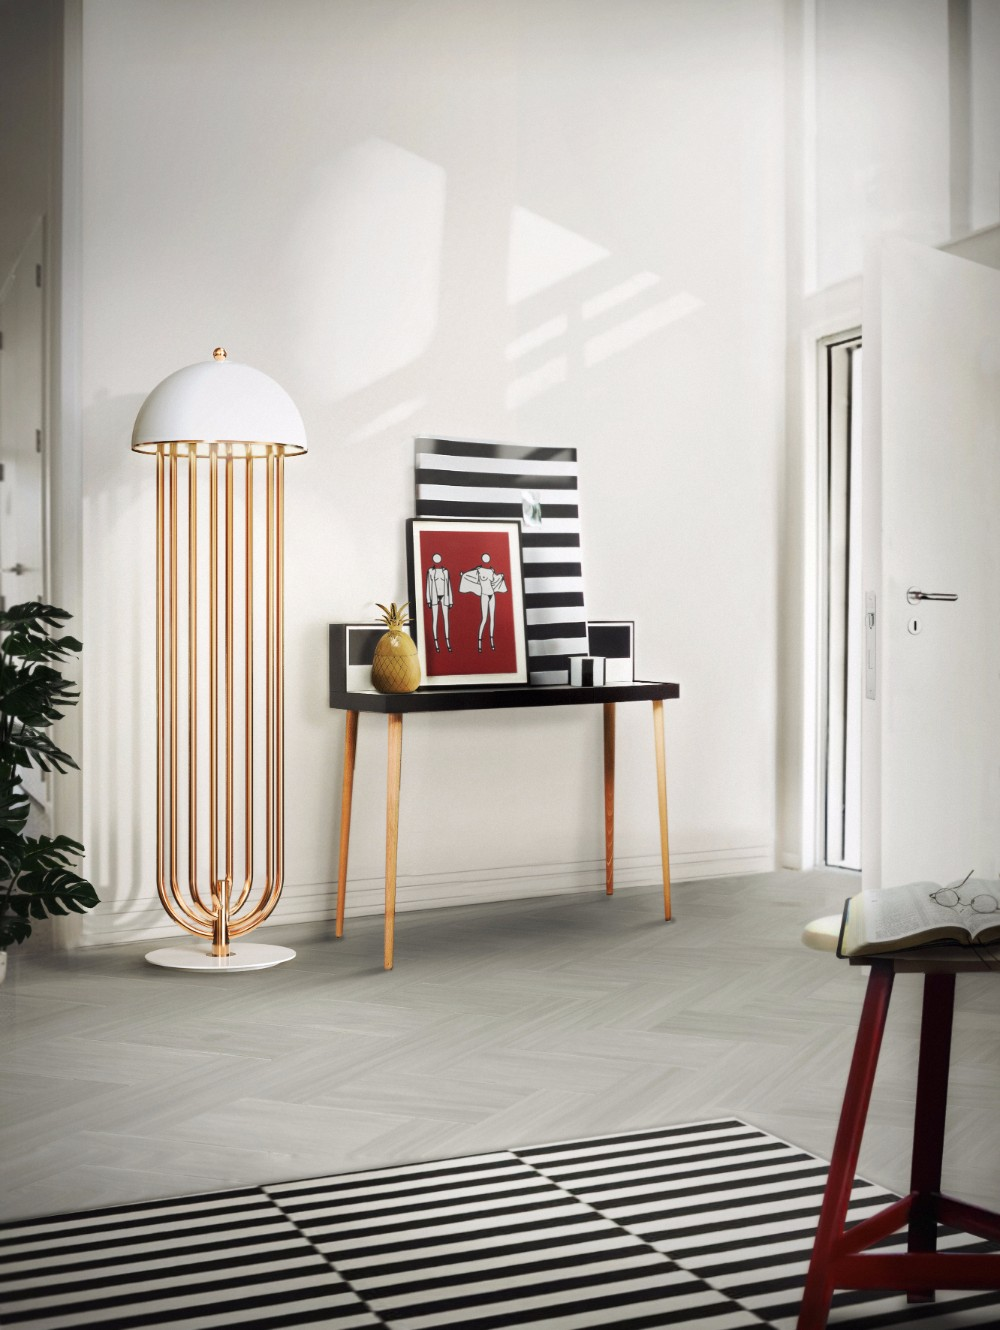 Trending Product Let's Dance with This Trendy Mid-Century Floor Lamp 2